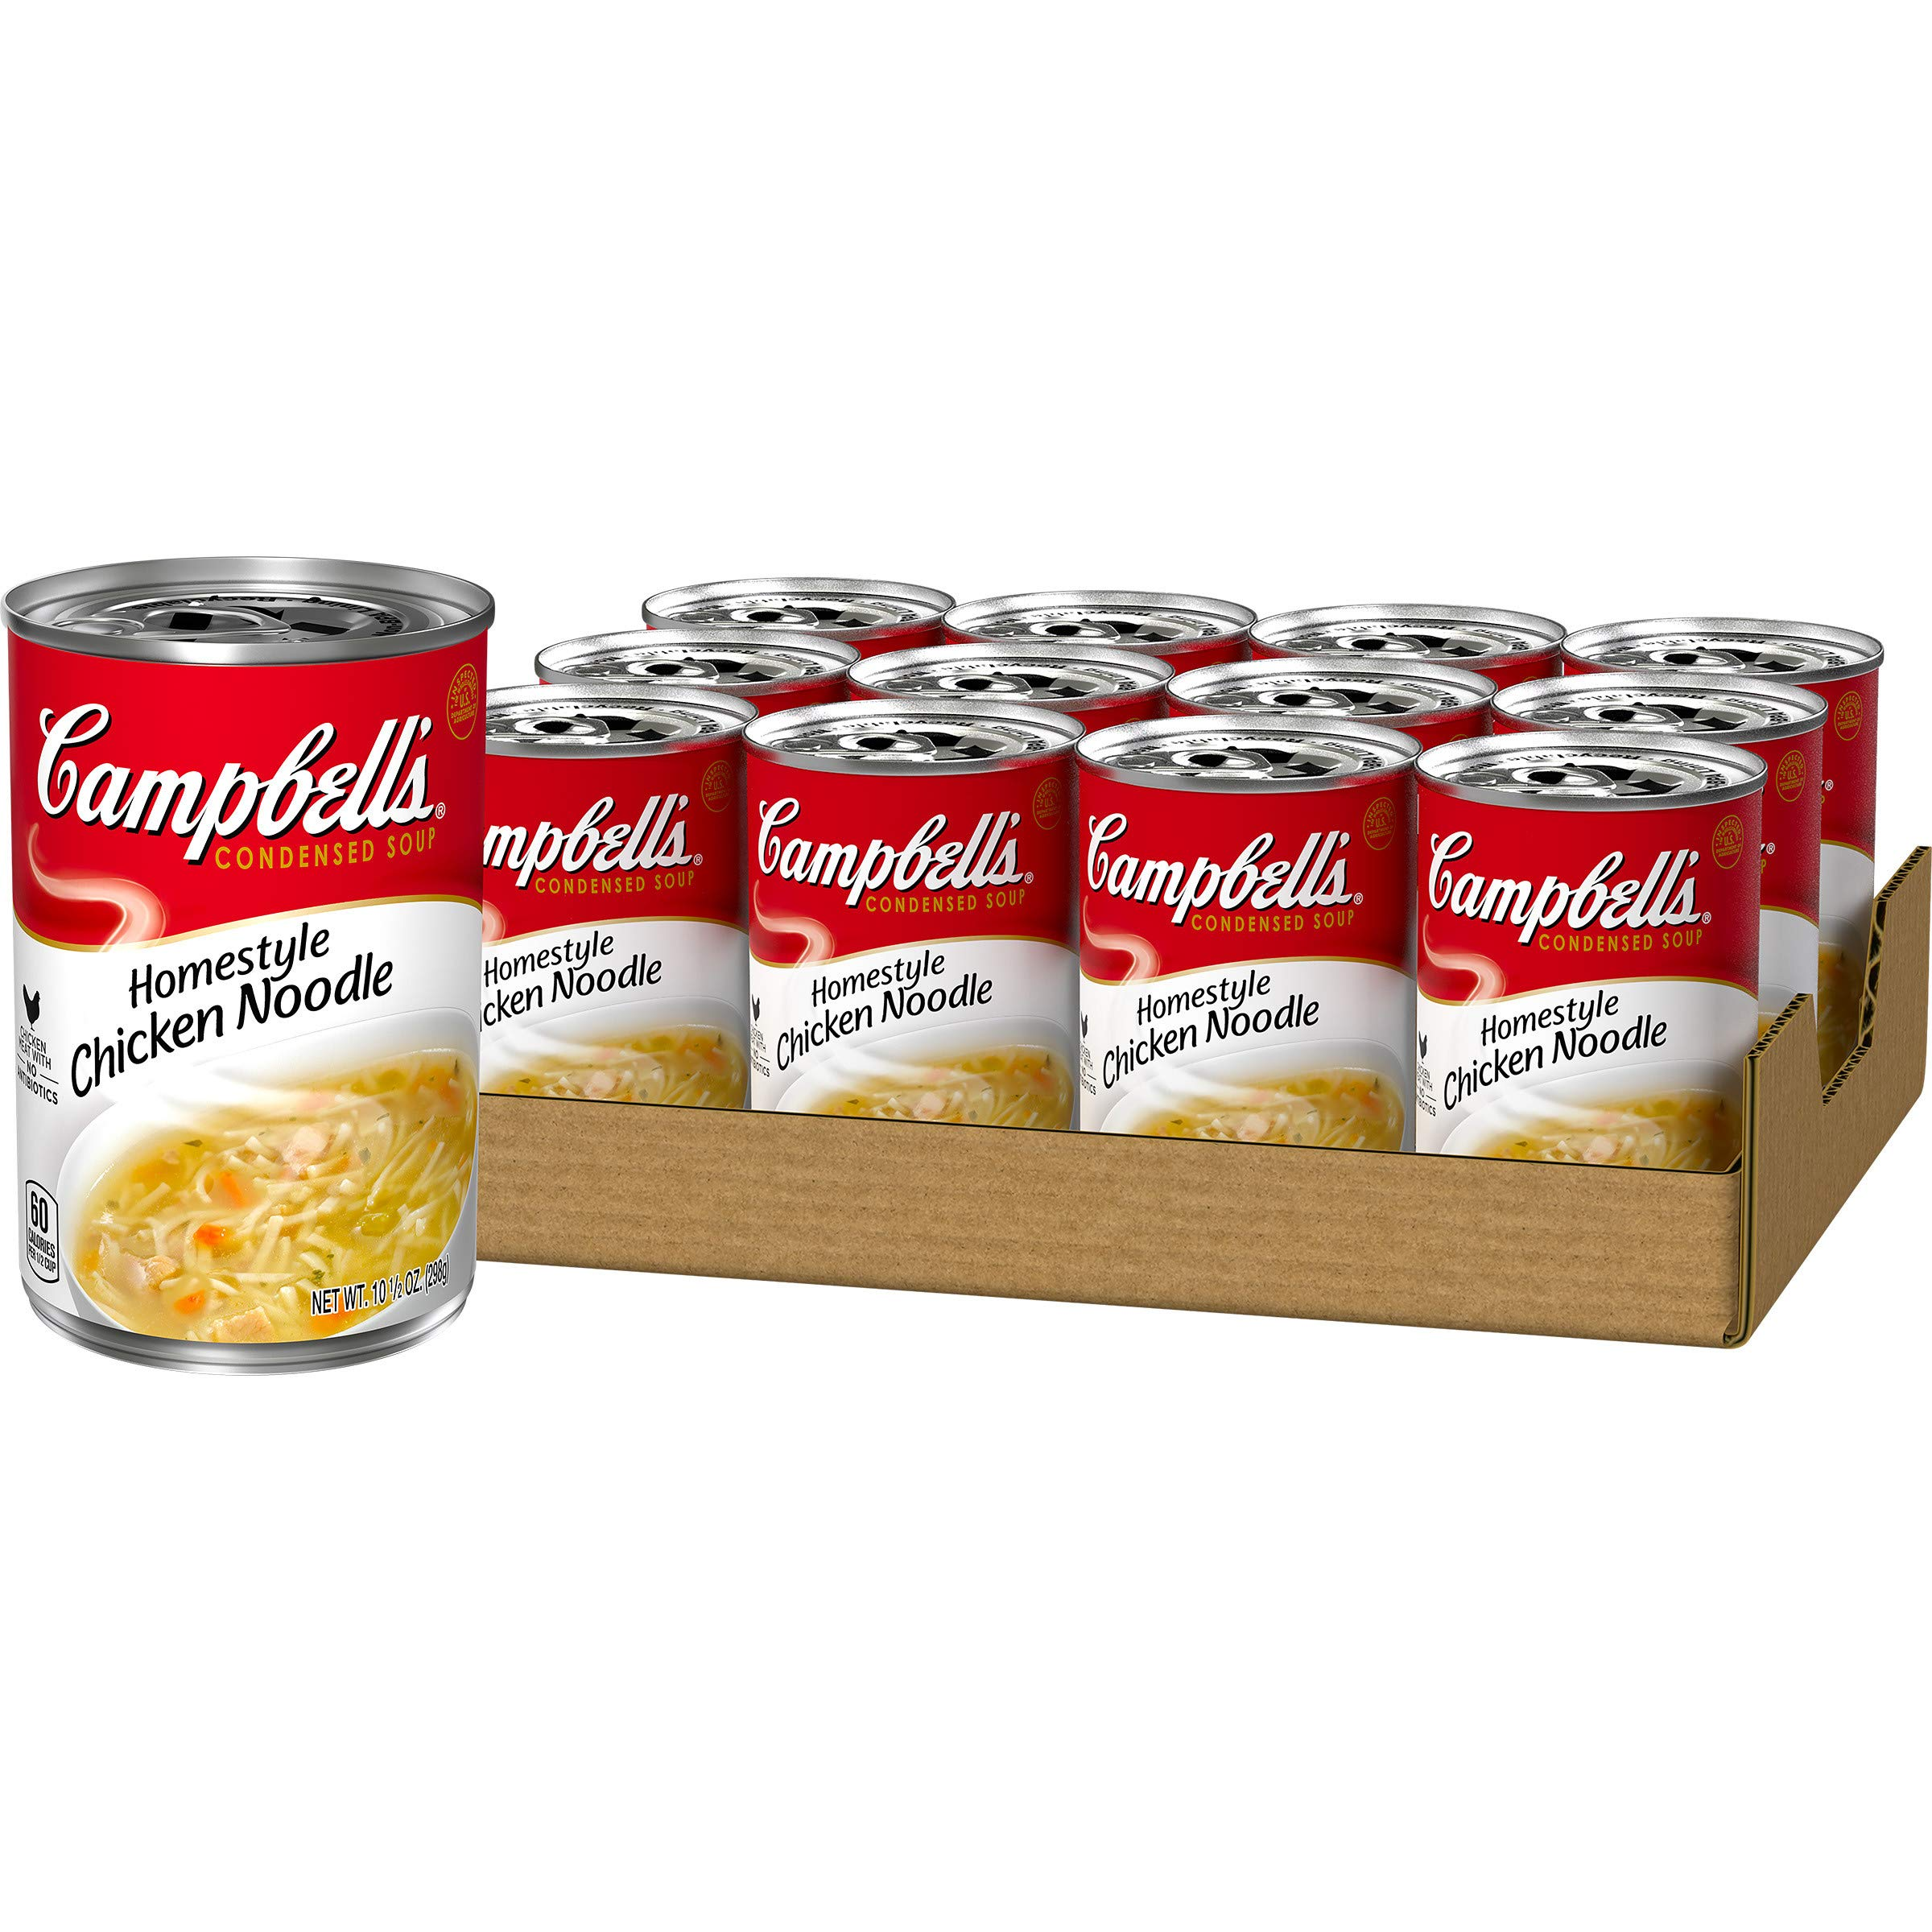 Campbell's Condensed Homestyle Chicken Noodle Soup, 10.5 Ounce (Pack of 12)